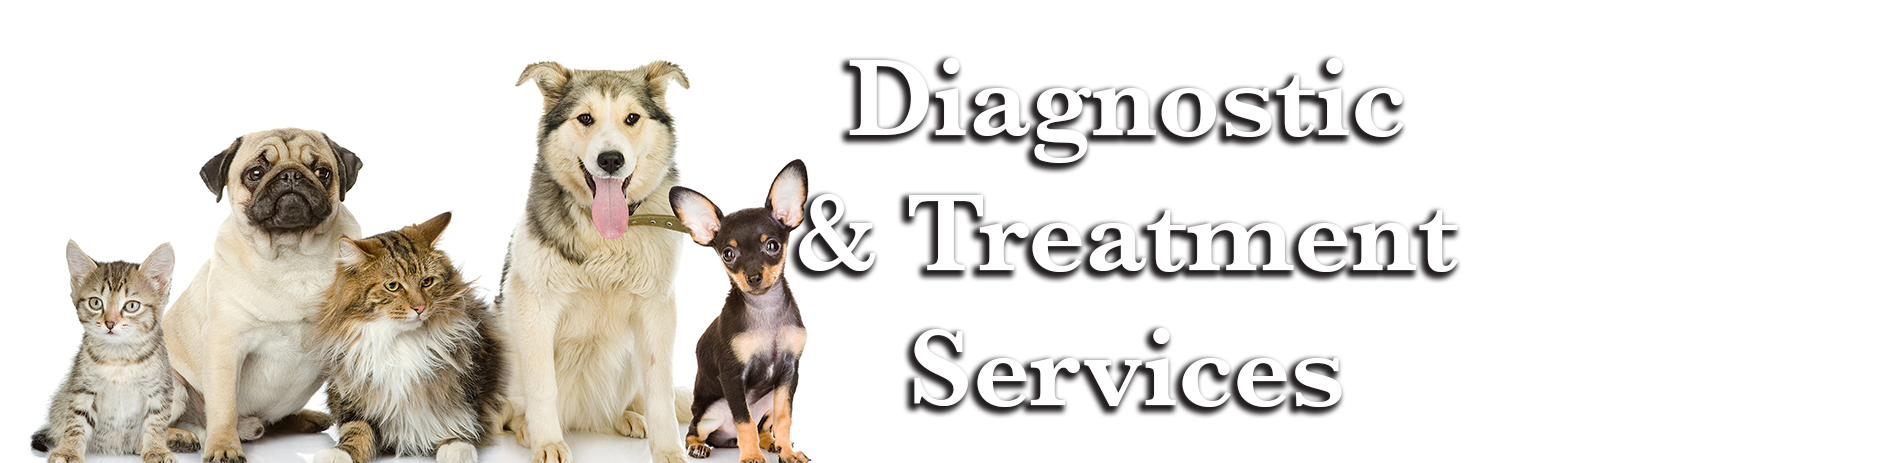 Diagnostic & Treatment Services